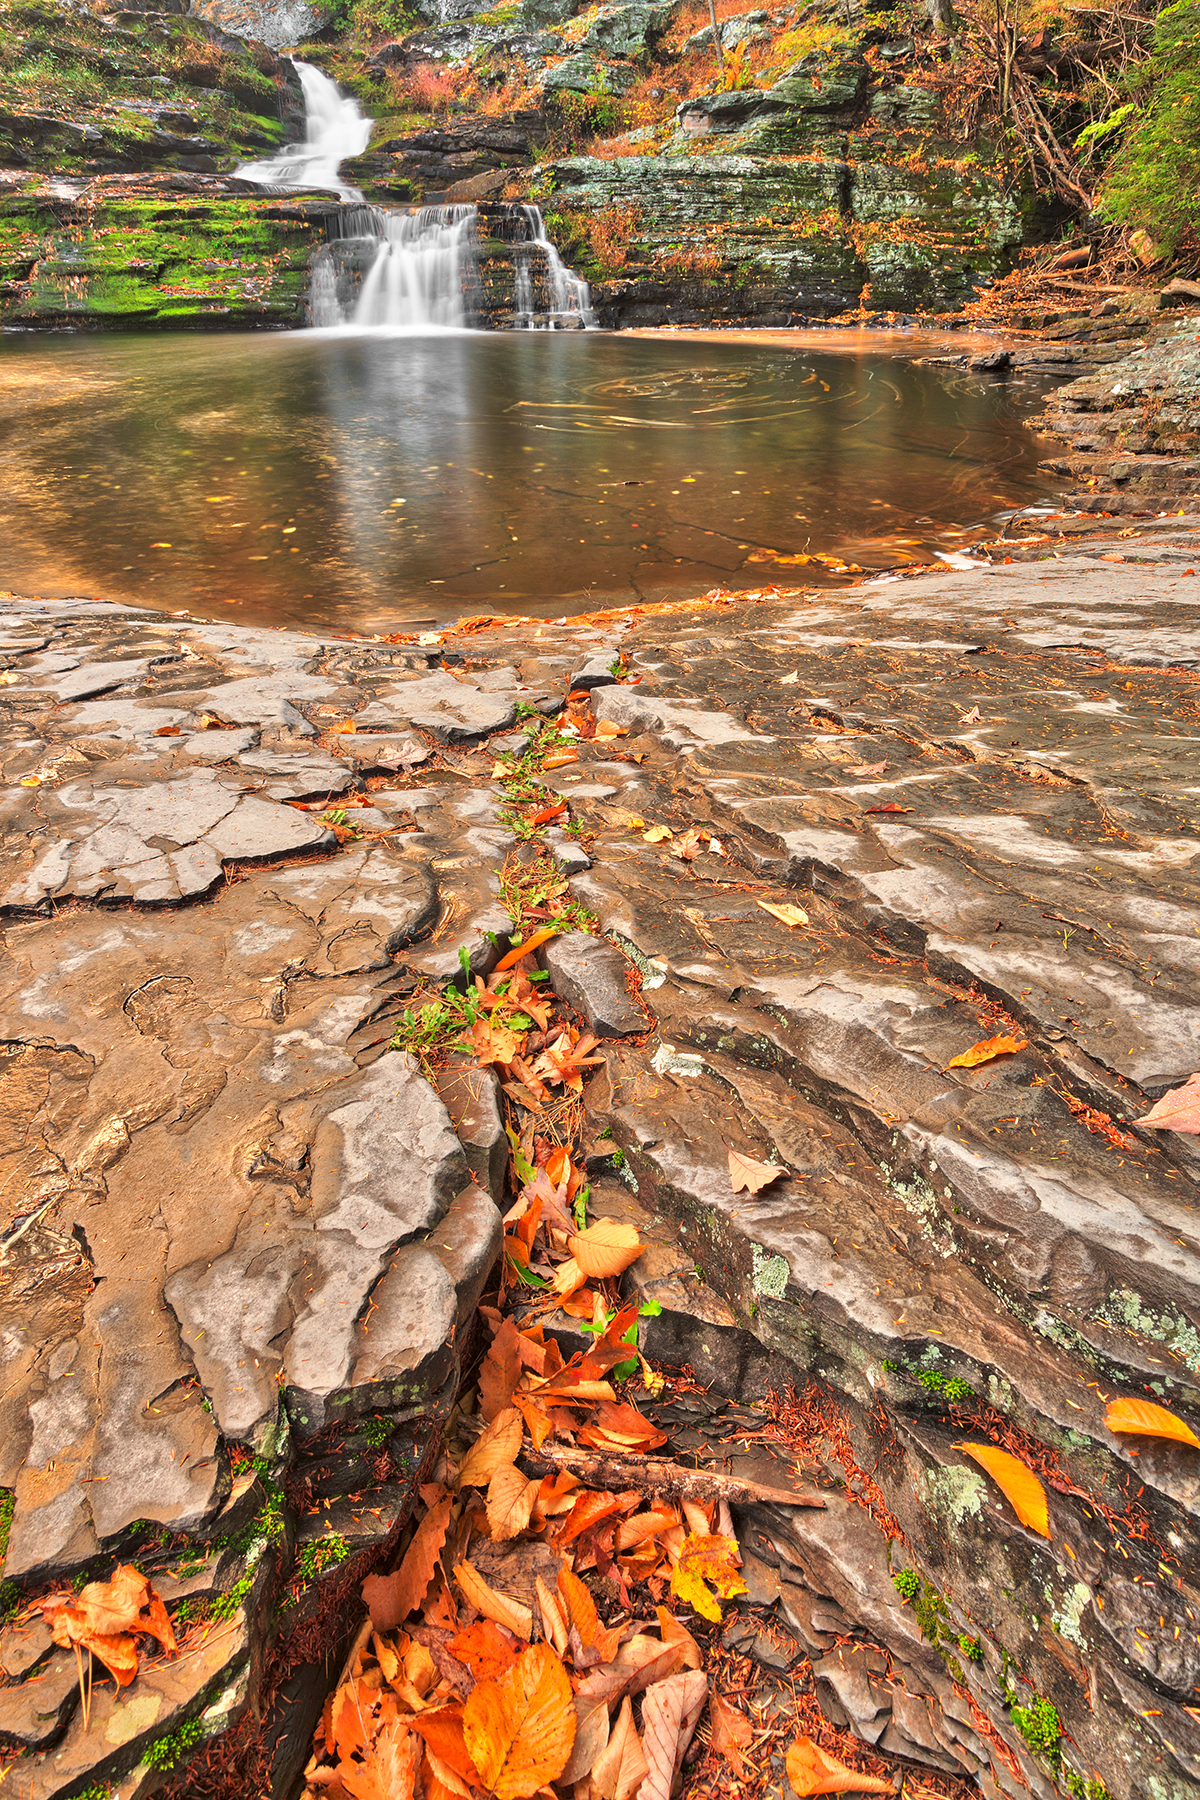 Autumn crater waterfall - hdr photo